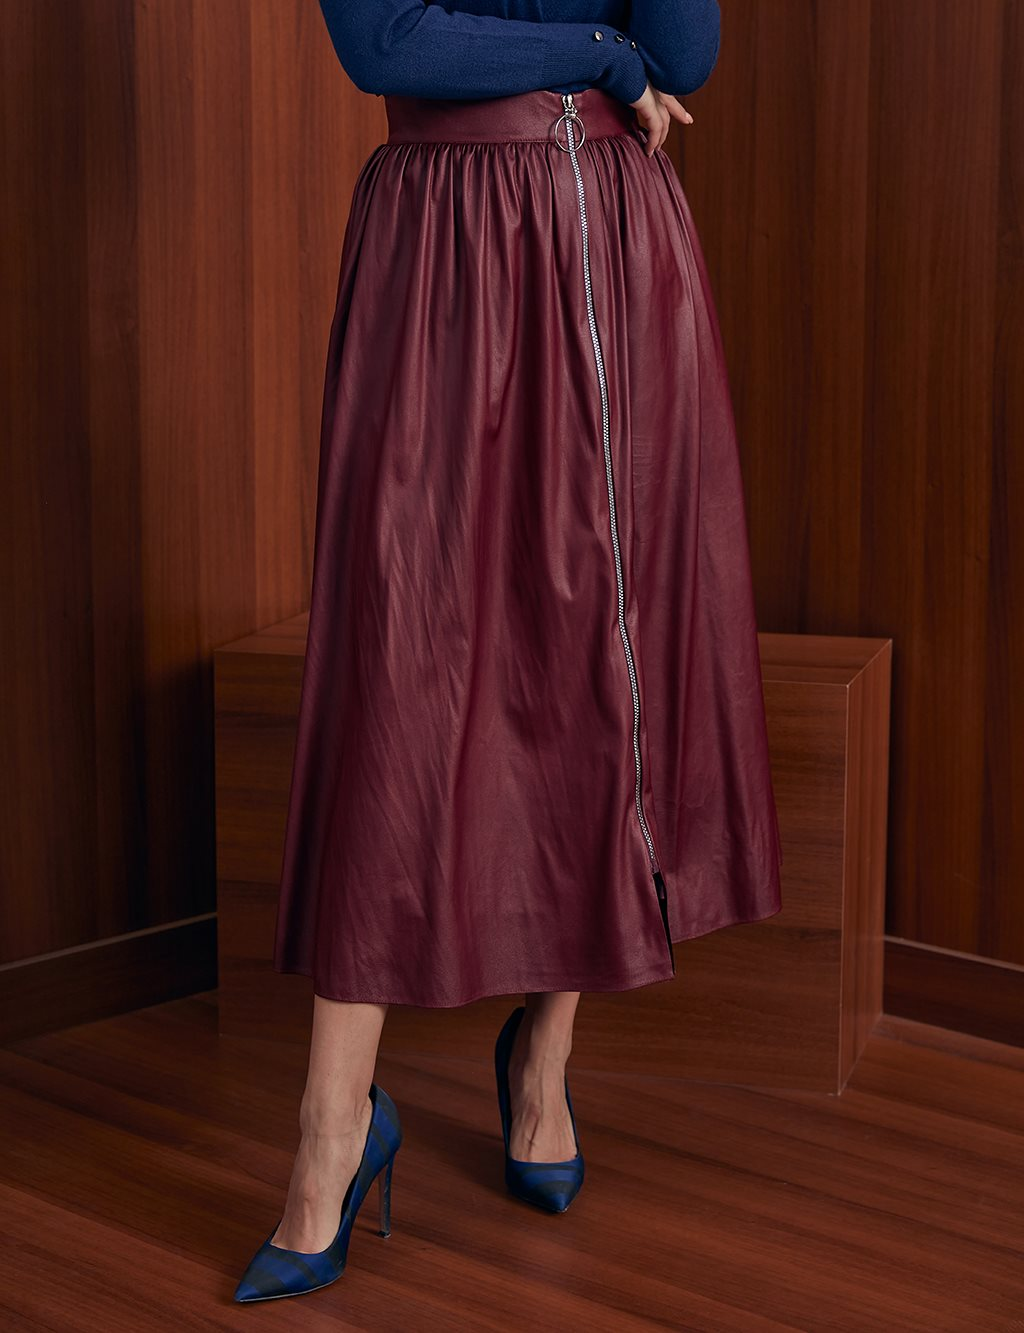 KYR Zipper Detailed A-line Skirt A20 72099 Burgundy